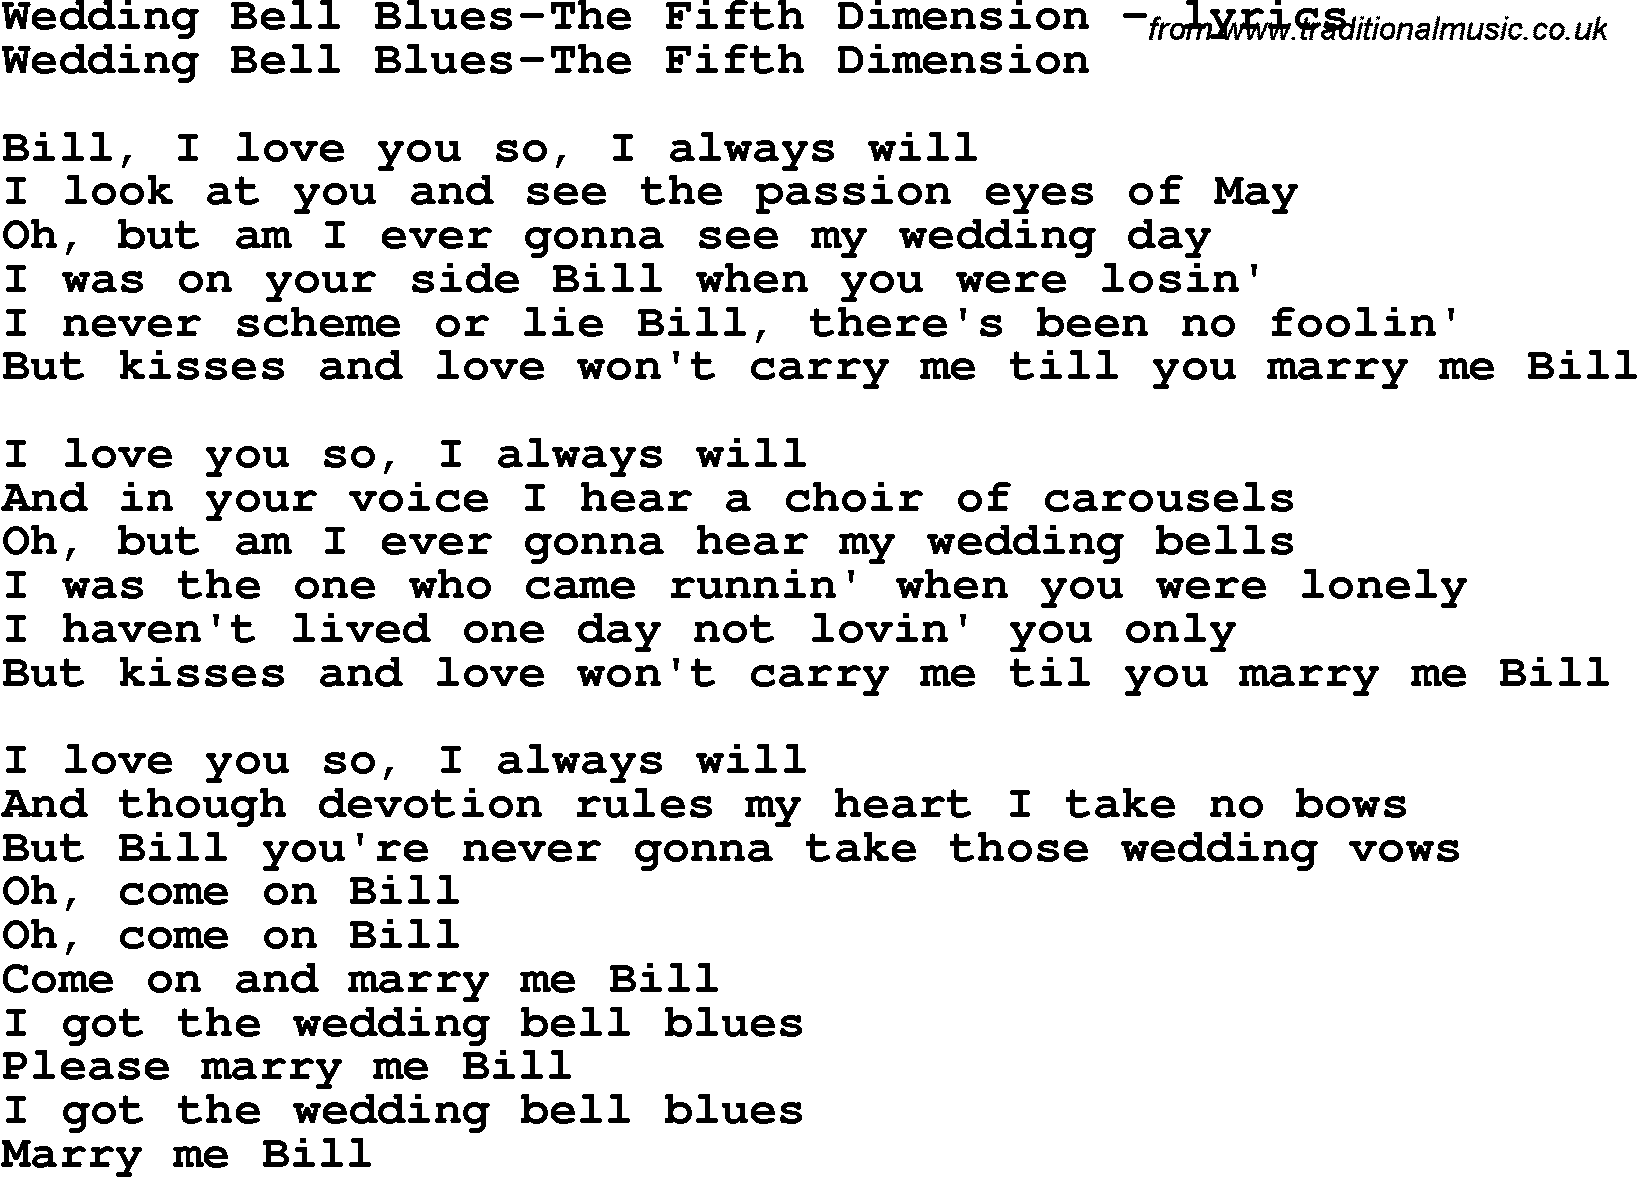 Love Song Lyrics ForWedding Bell Blues The Fifth Dimension